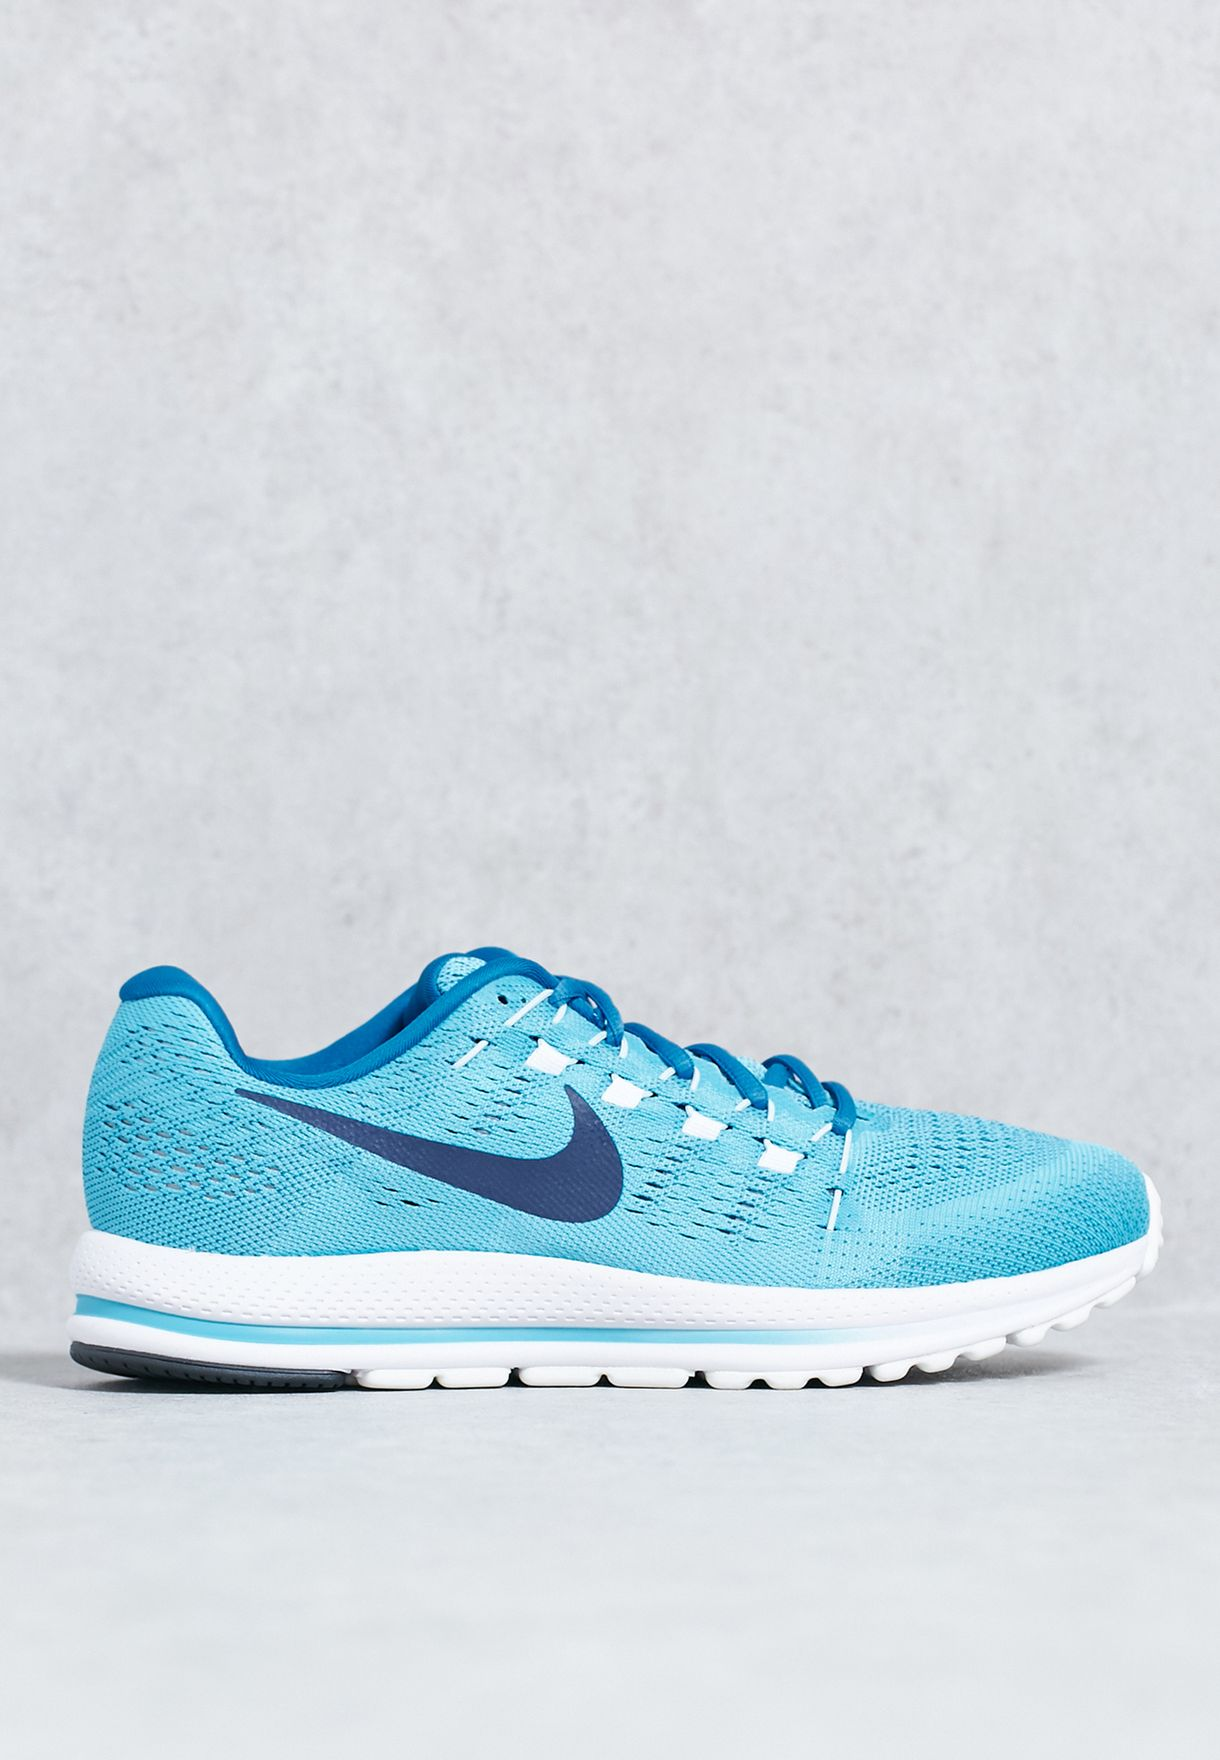 83bb4cafe6973 Shop Nike blue Air Zoom Vomero 12 863762-402 for Men in UAE ...